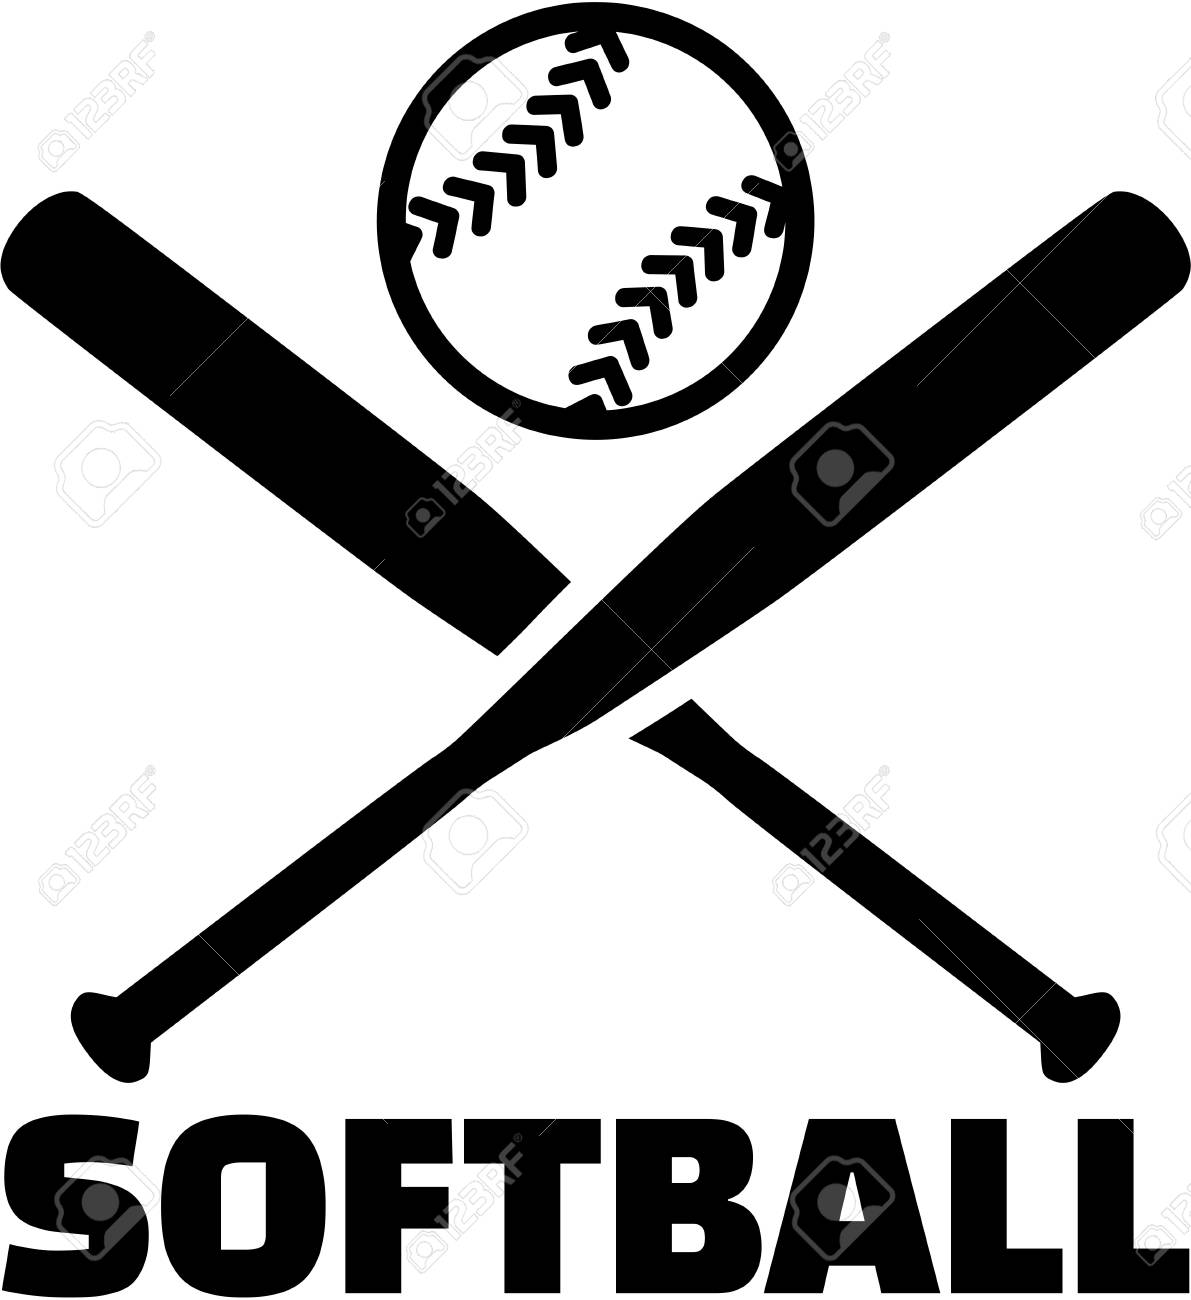 Softball with crossed bats and ball.